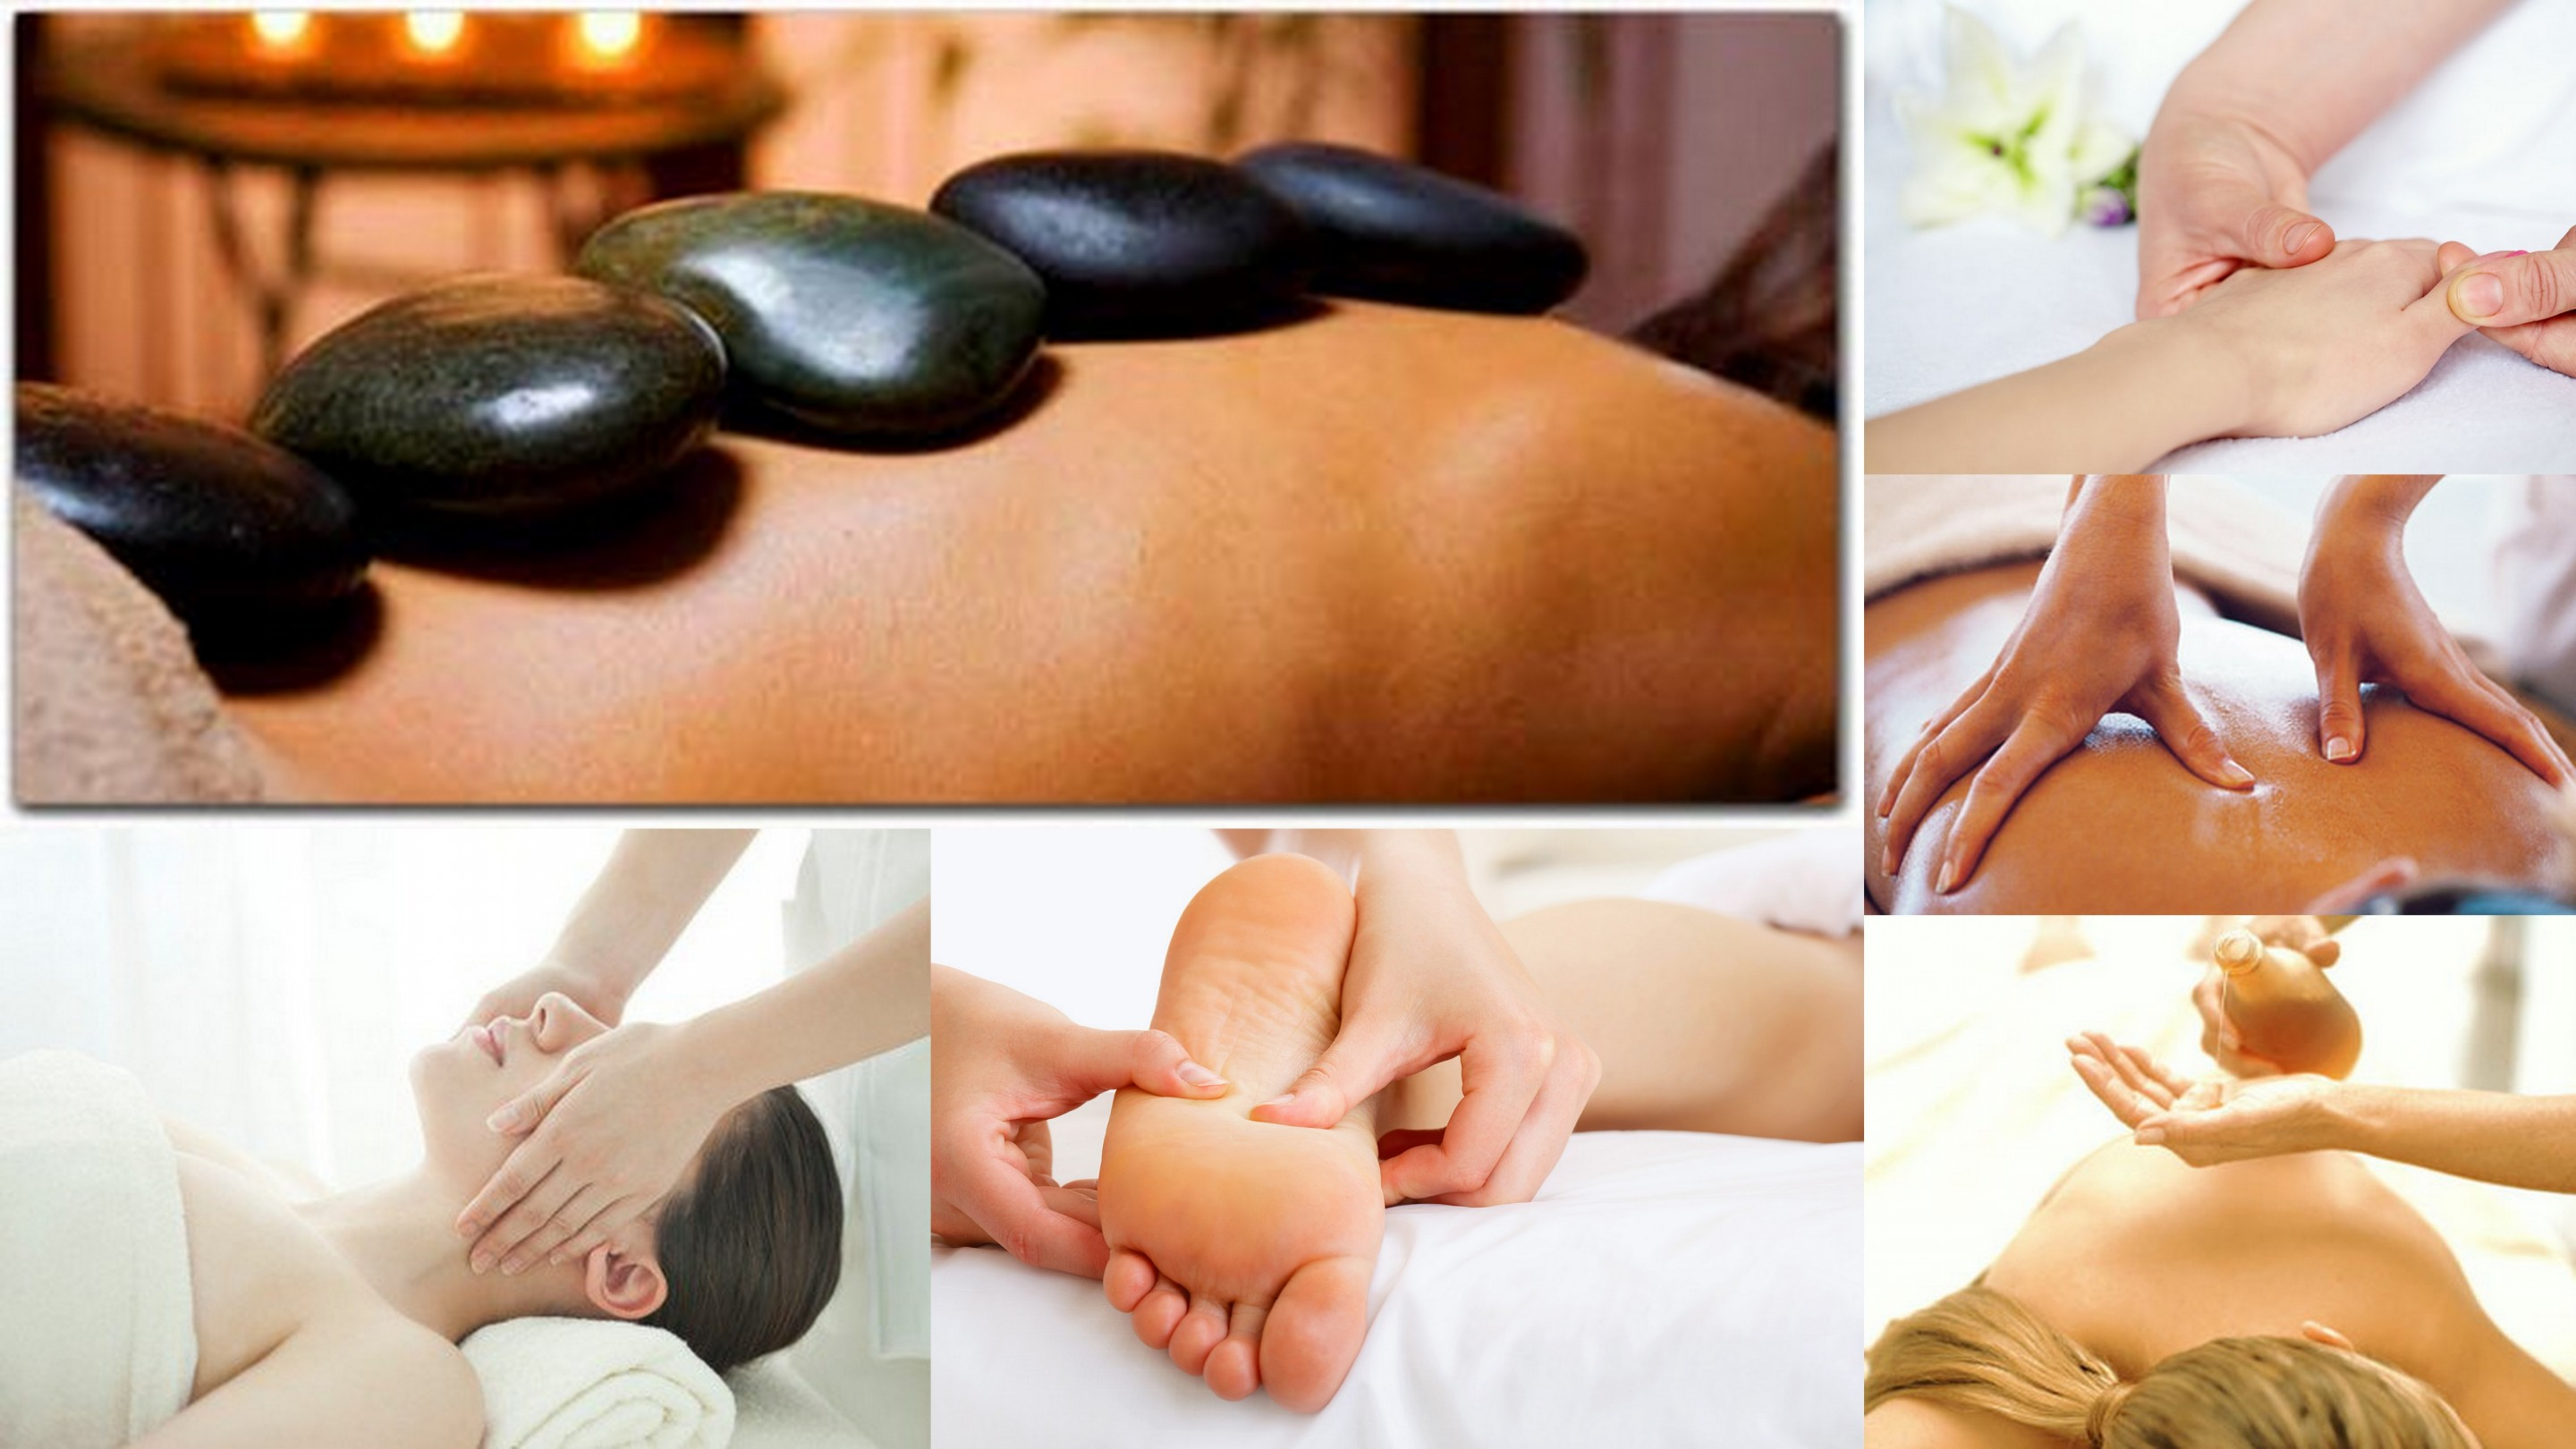 Massage types at Cherry Massage and Day Spa, Chinese deep tissue massage, Shiatsu, Swedish